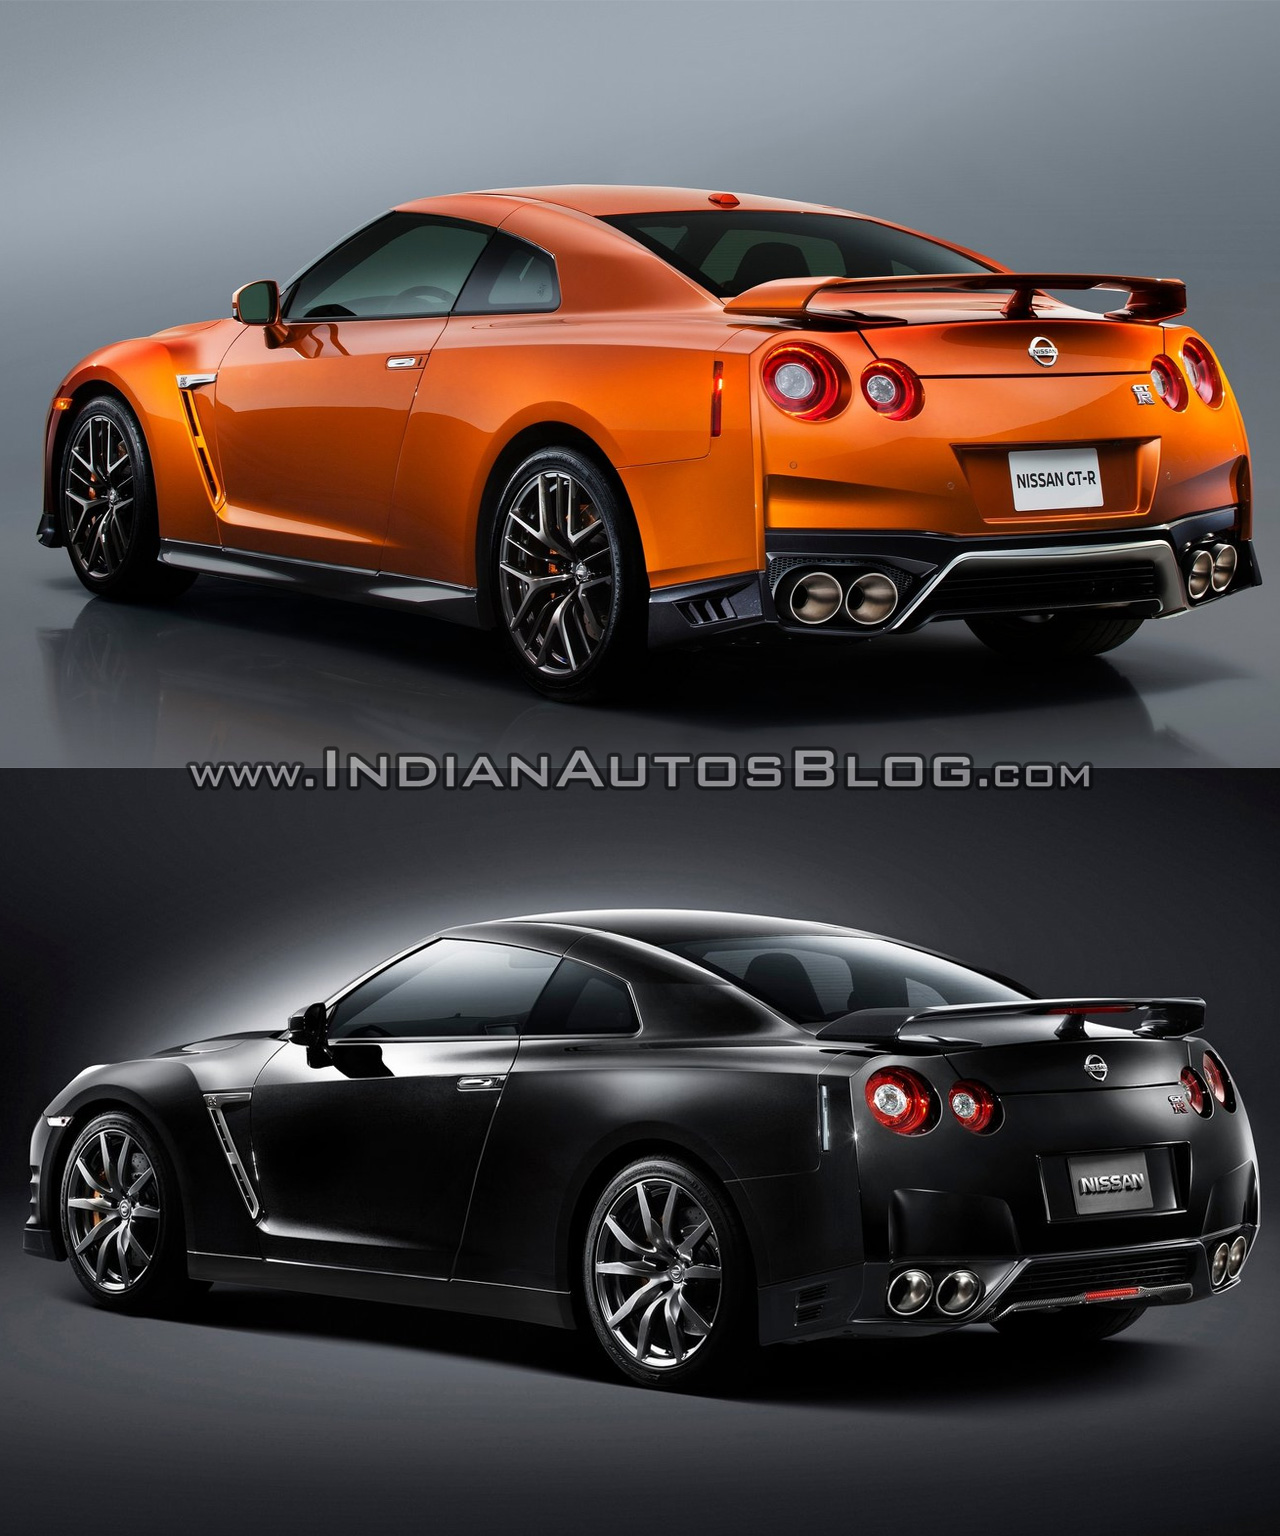 Nissan GT-R I Restyling 2 2013 - 2016 Coupe #5